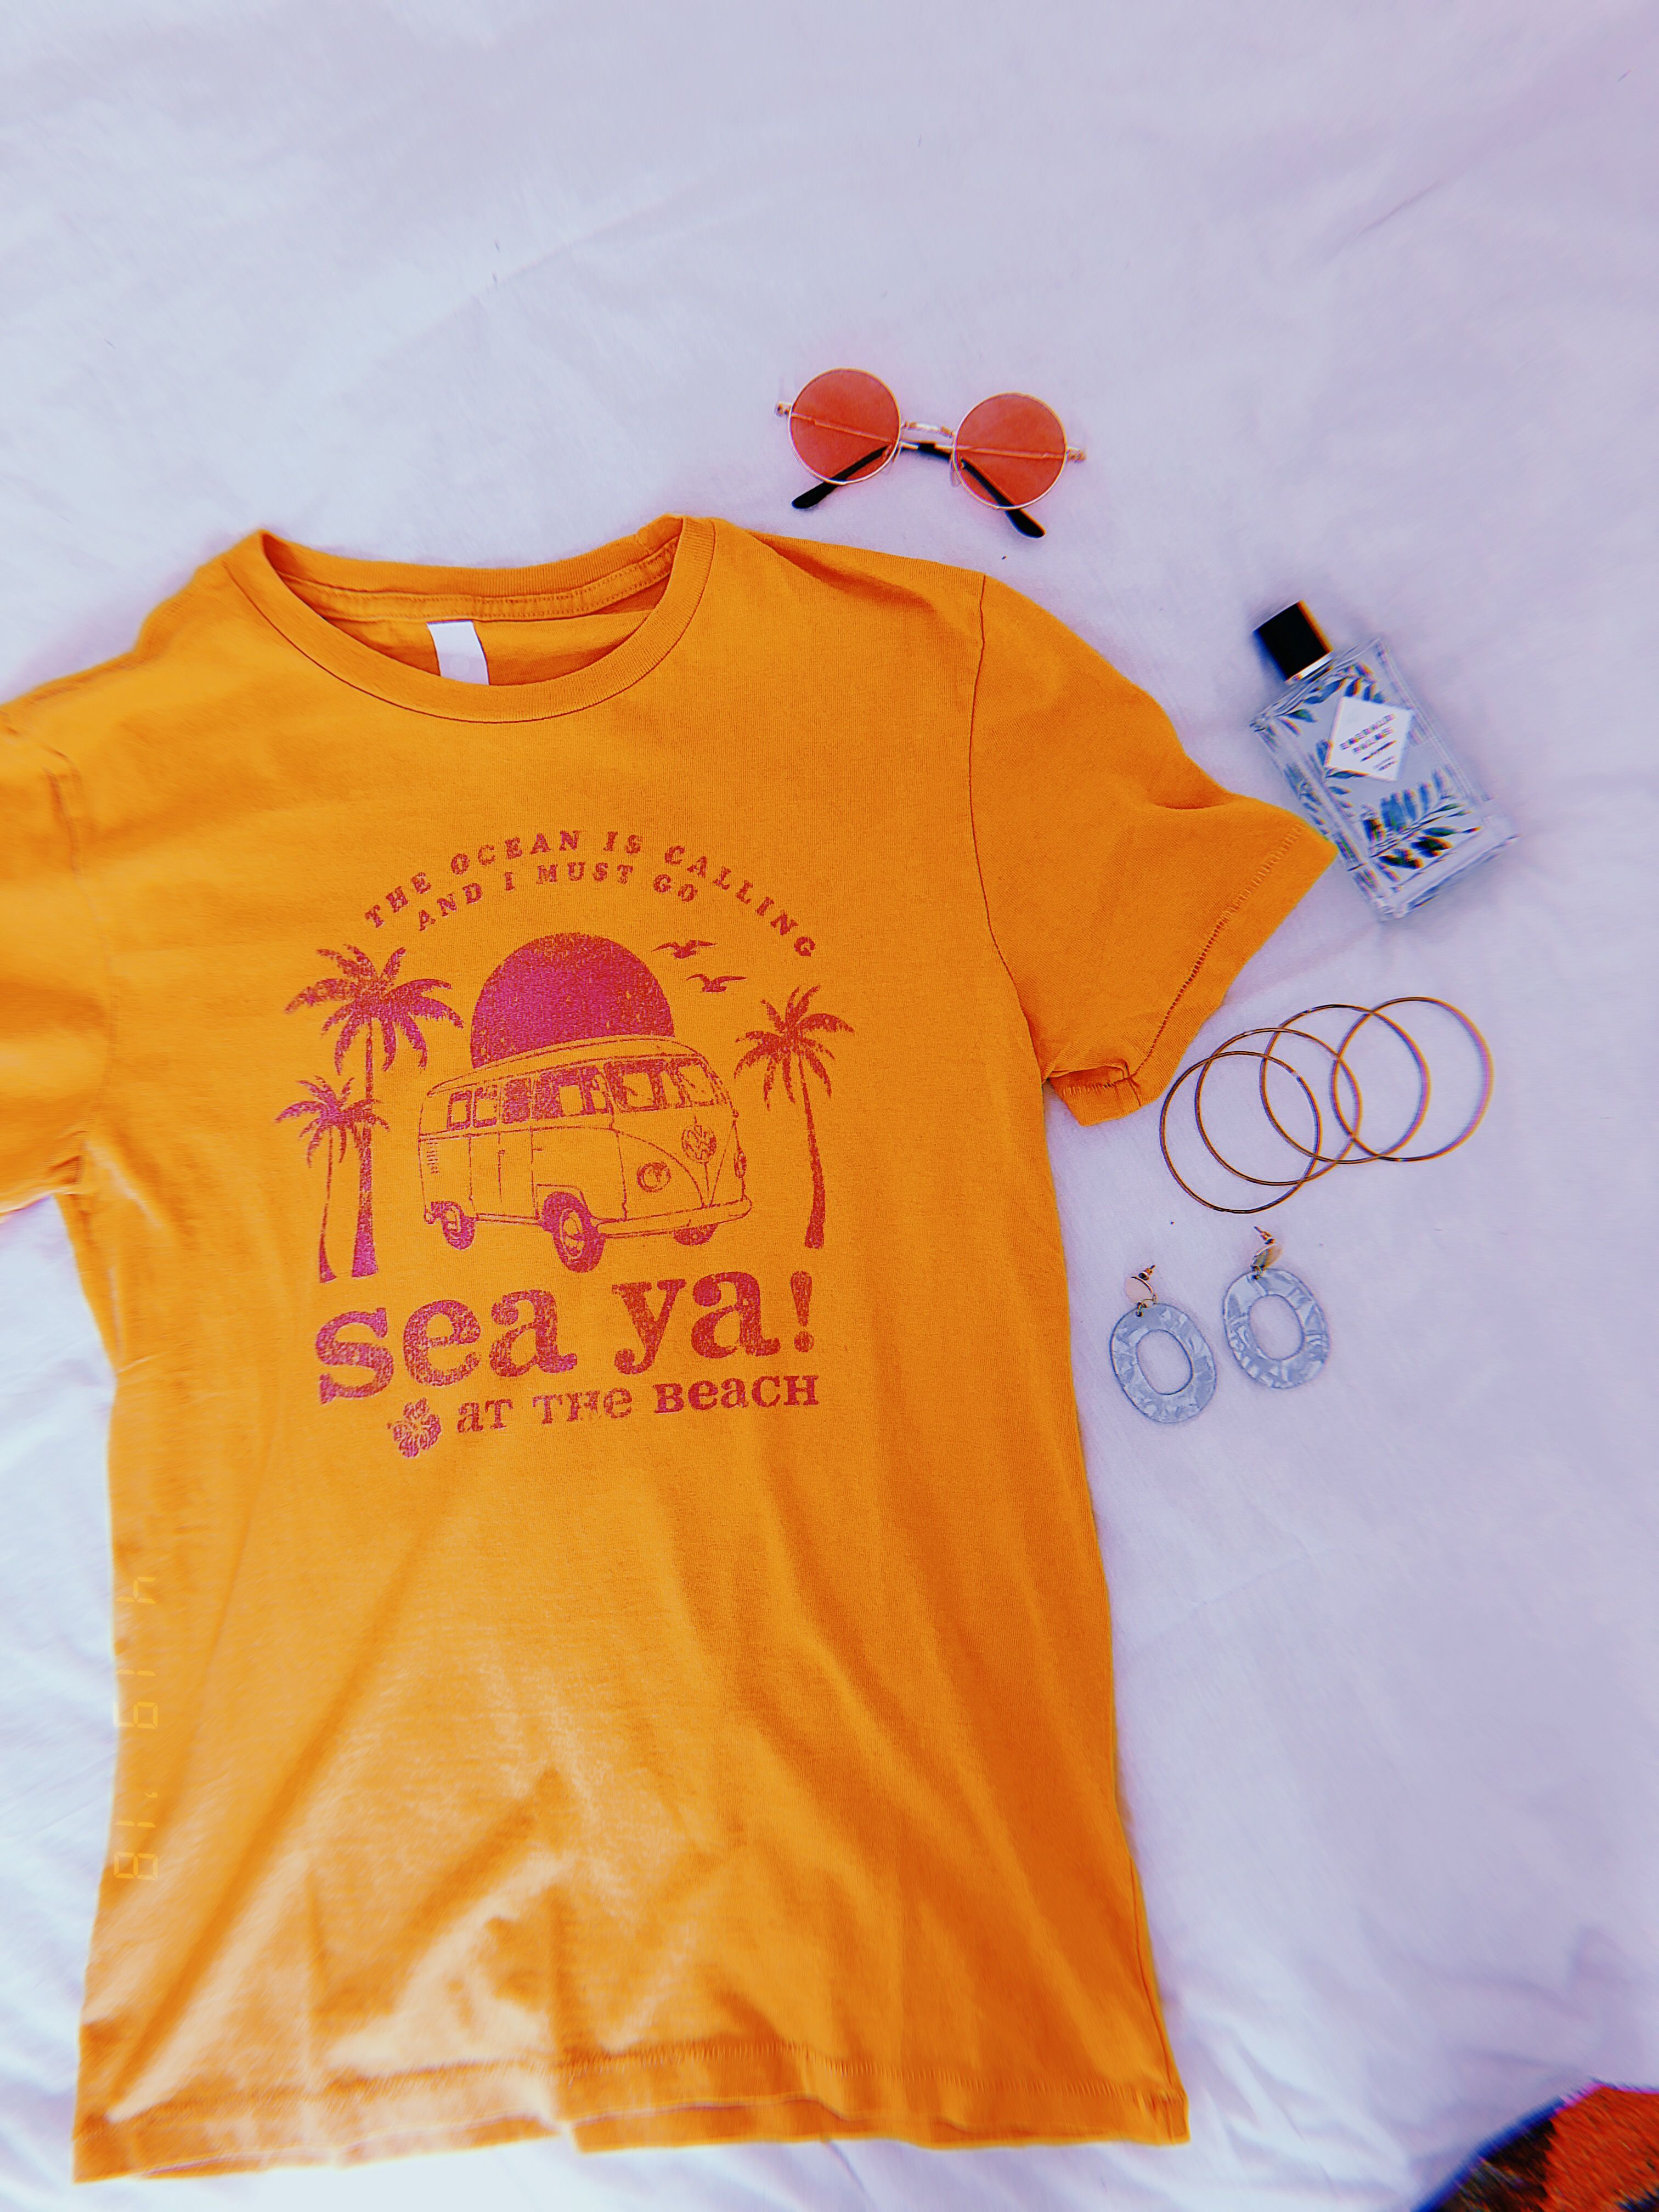 22a9243ea659 Our newest collection of beach style graphic tees! With distressed, vintage  style prints, these are your new go-to beach day essentials.